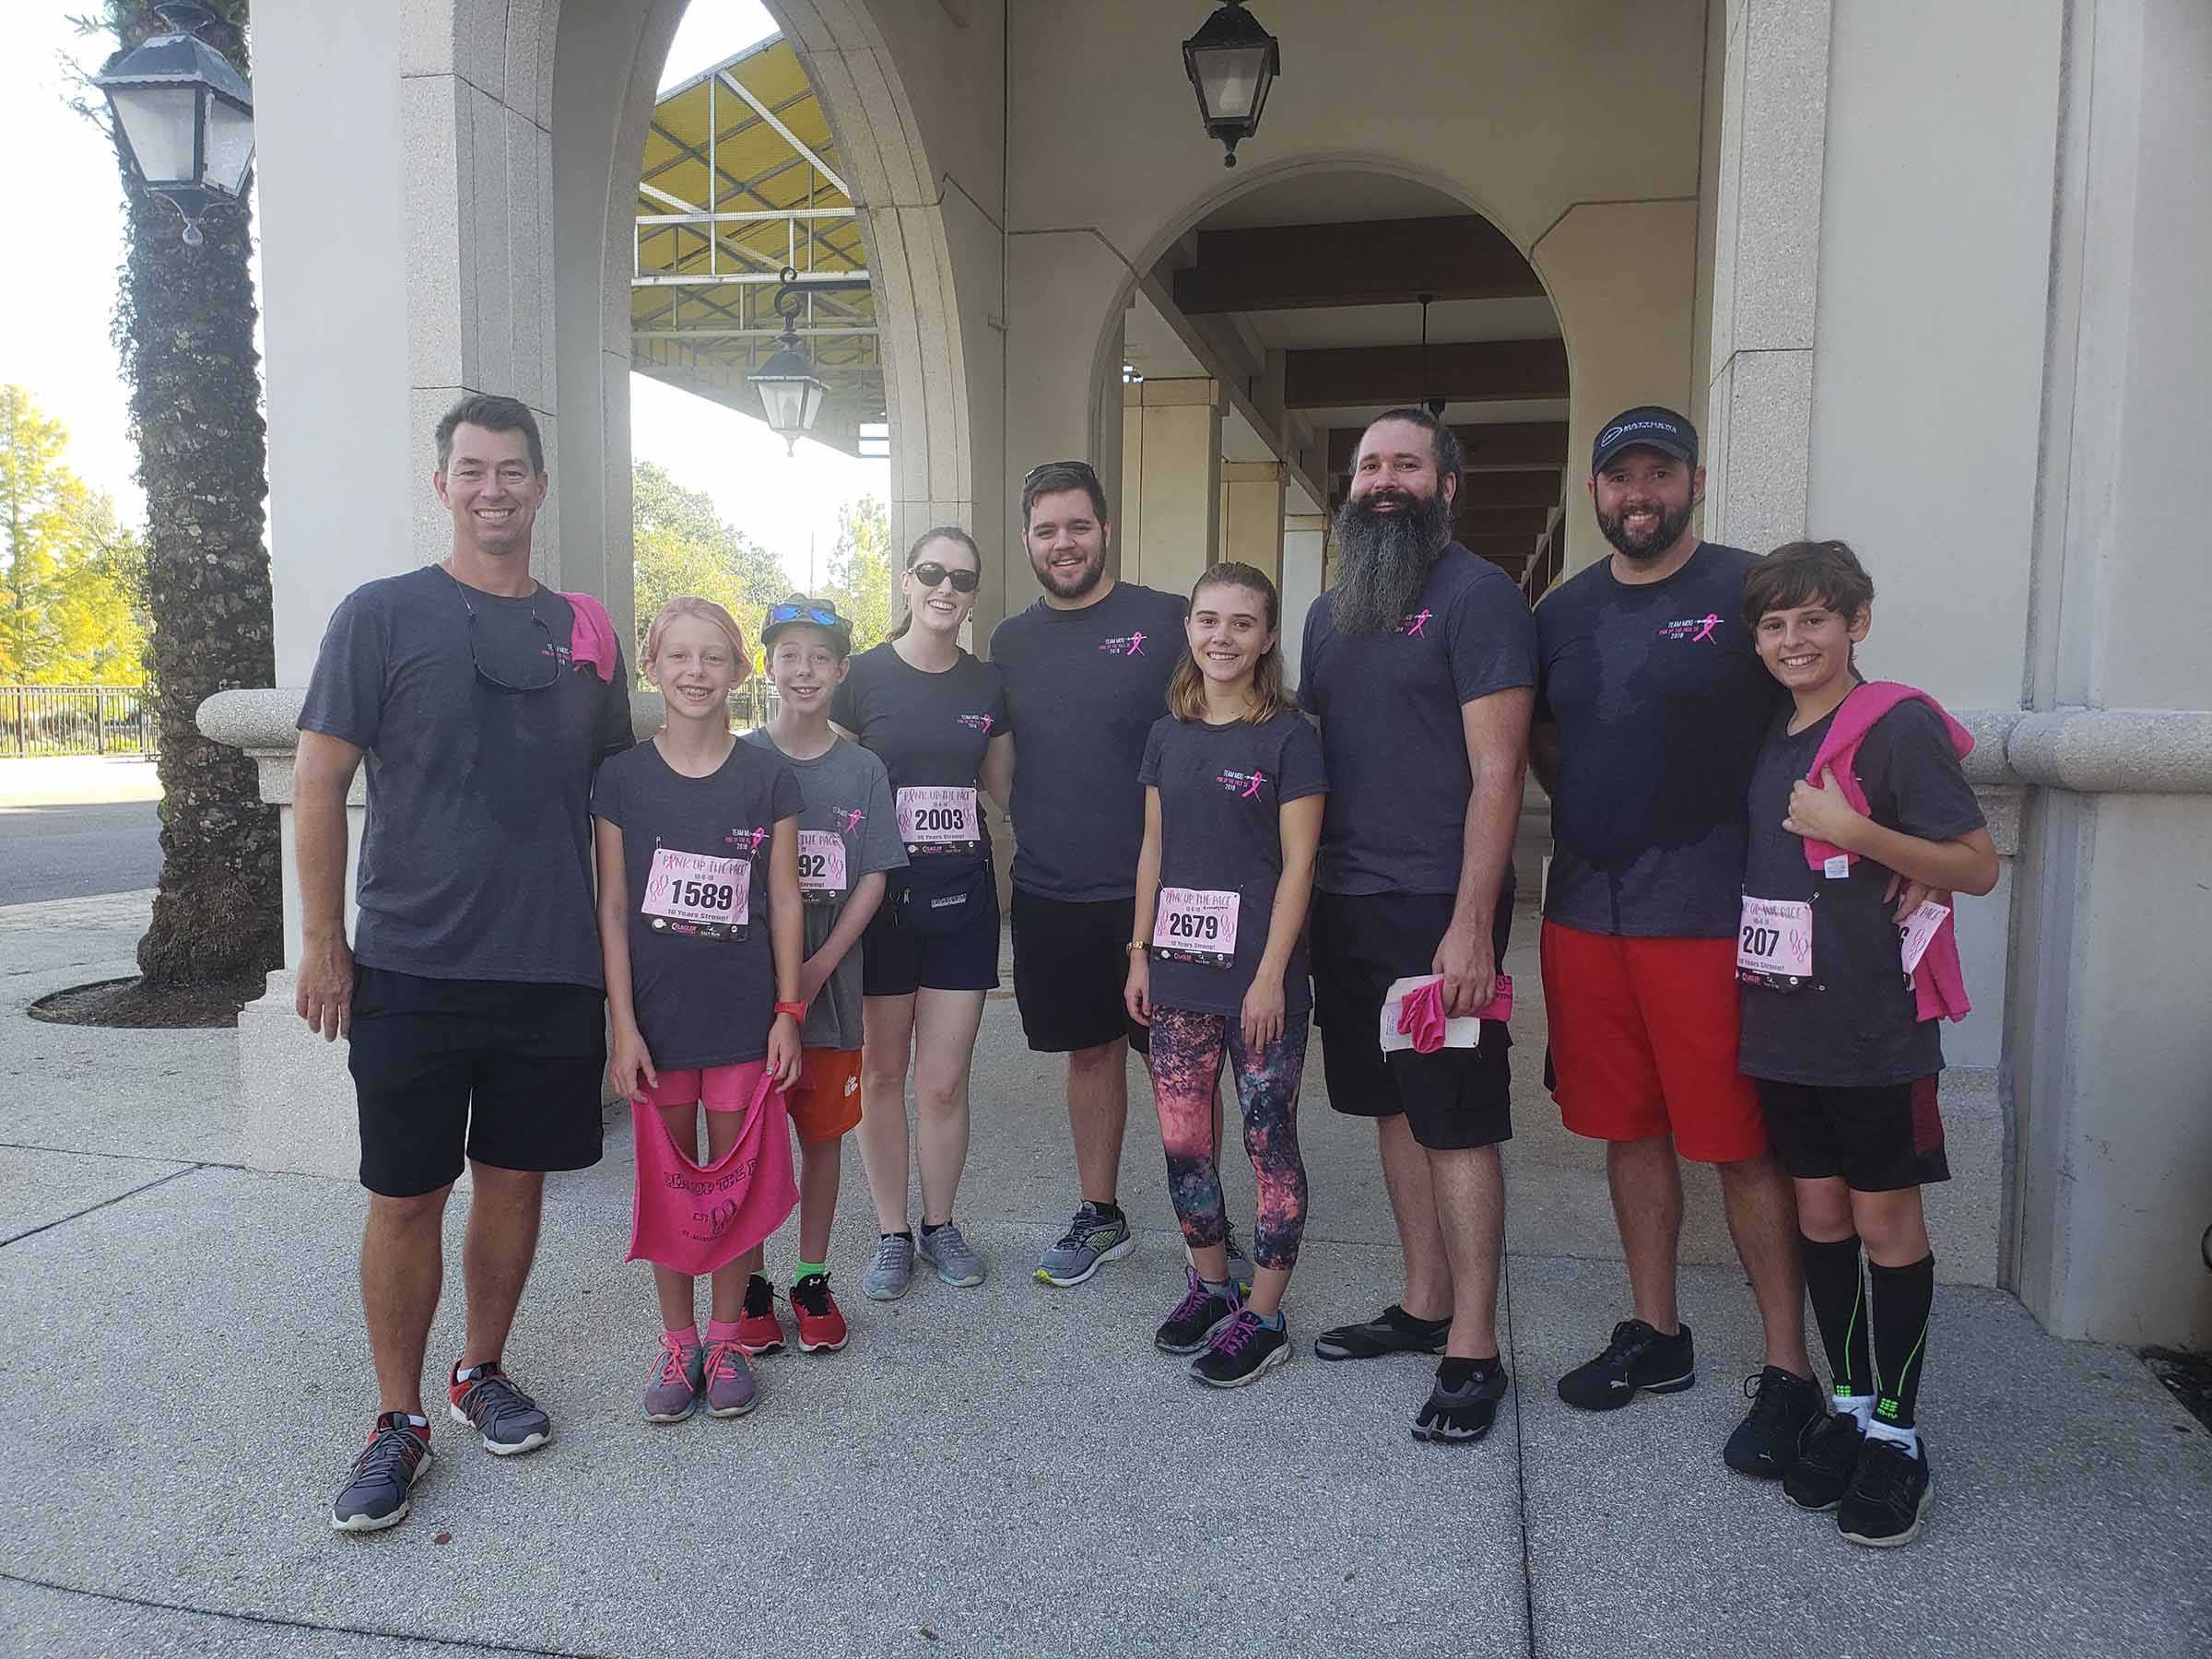 Some team members and their families in running clothes smiling.